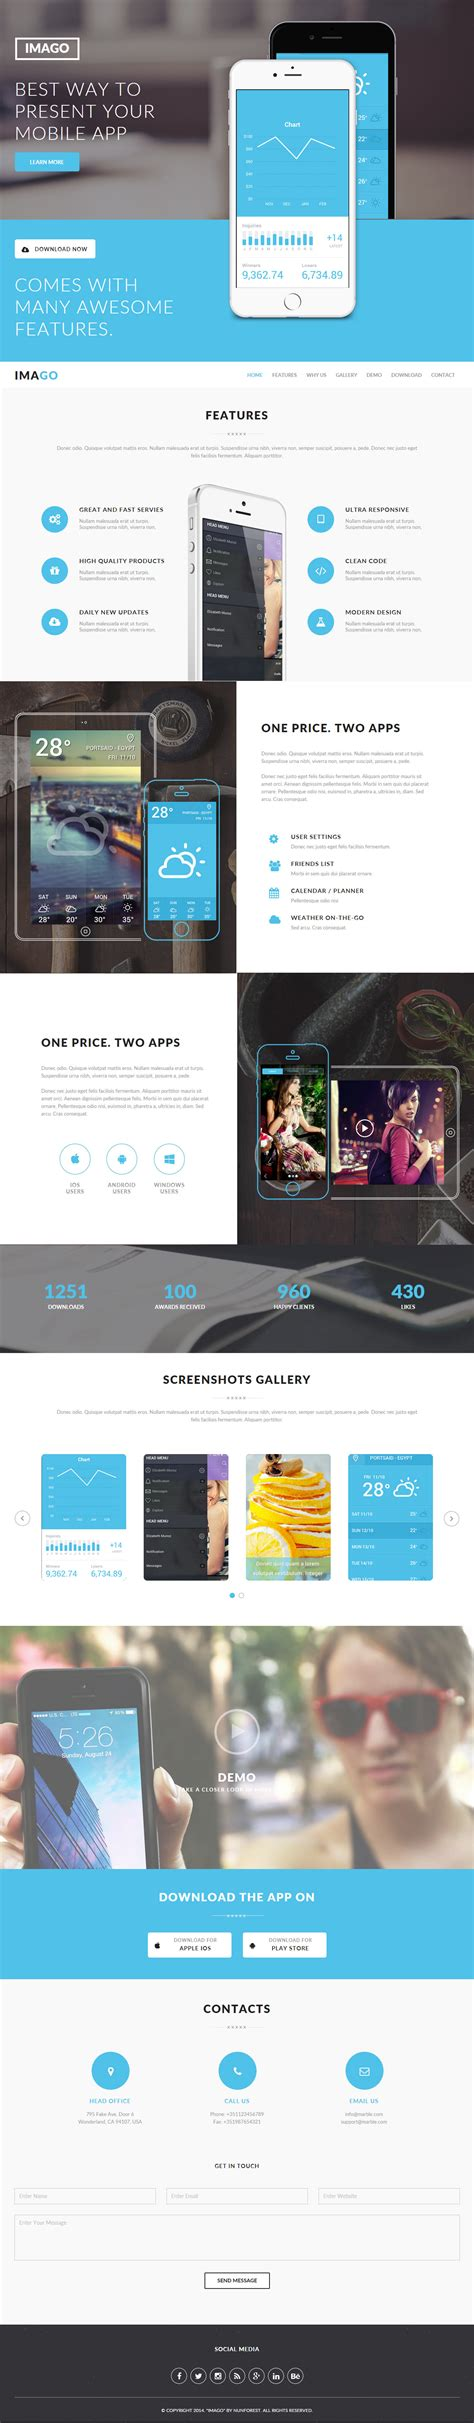 mobile landing page templates 5 best muse mobile app landing page template 2017